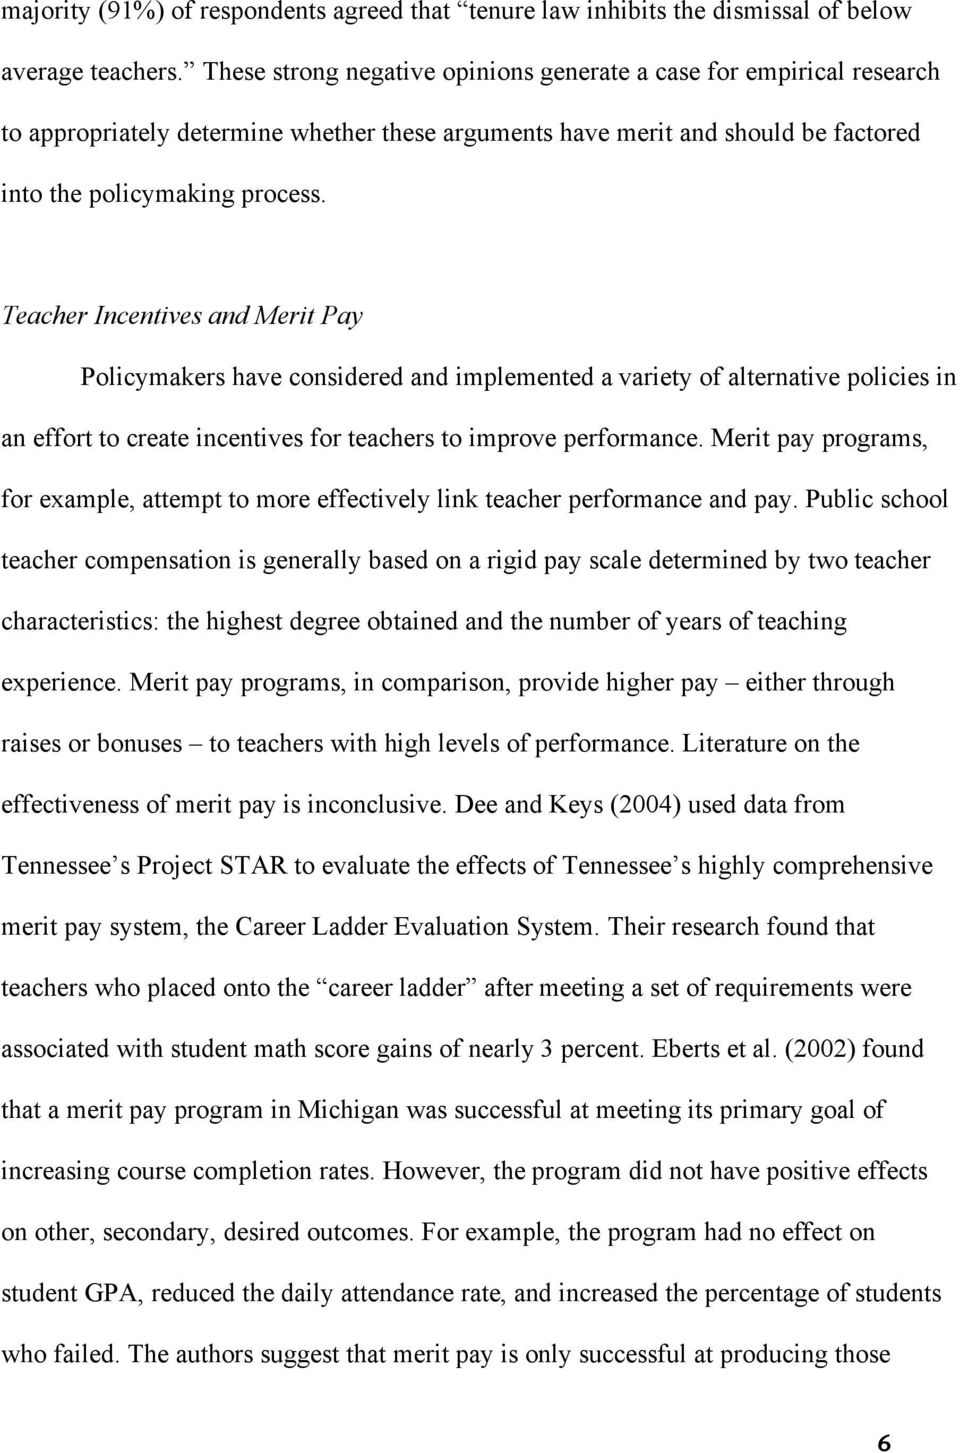 Teacher Incentives and Merit Pay Policymakers have considered and implemented a variety of alternative policies in an effort to create incentives for teachers to improve performance.